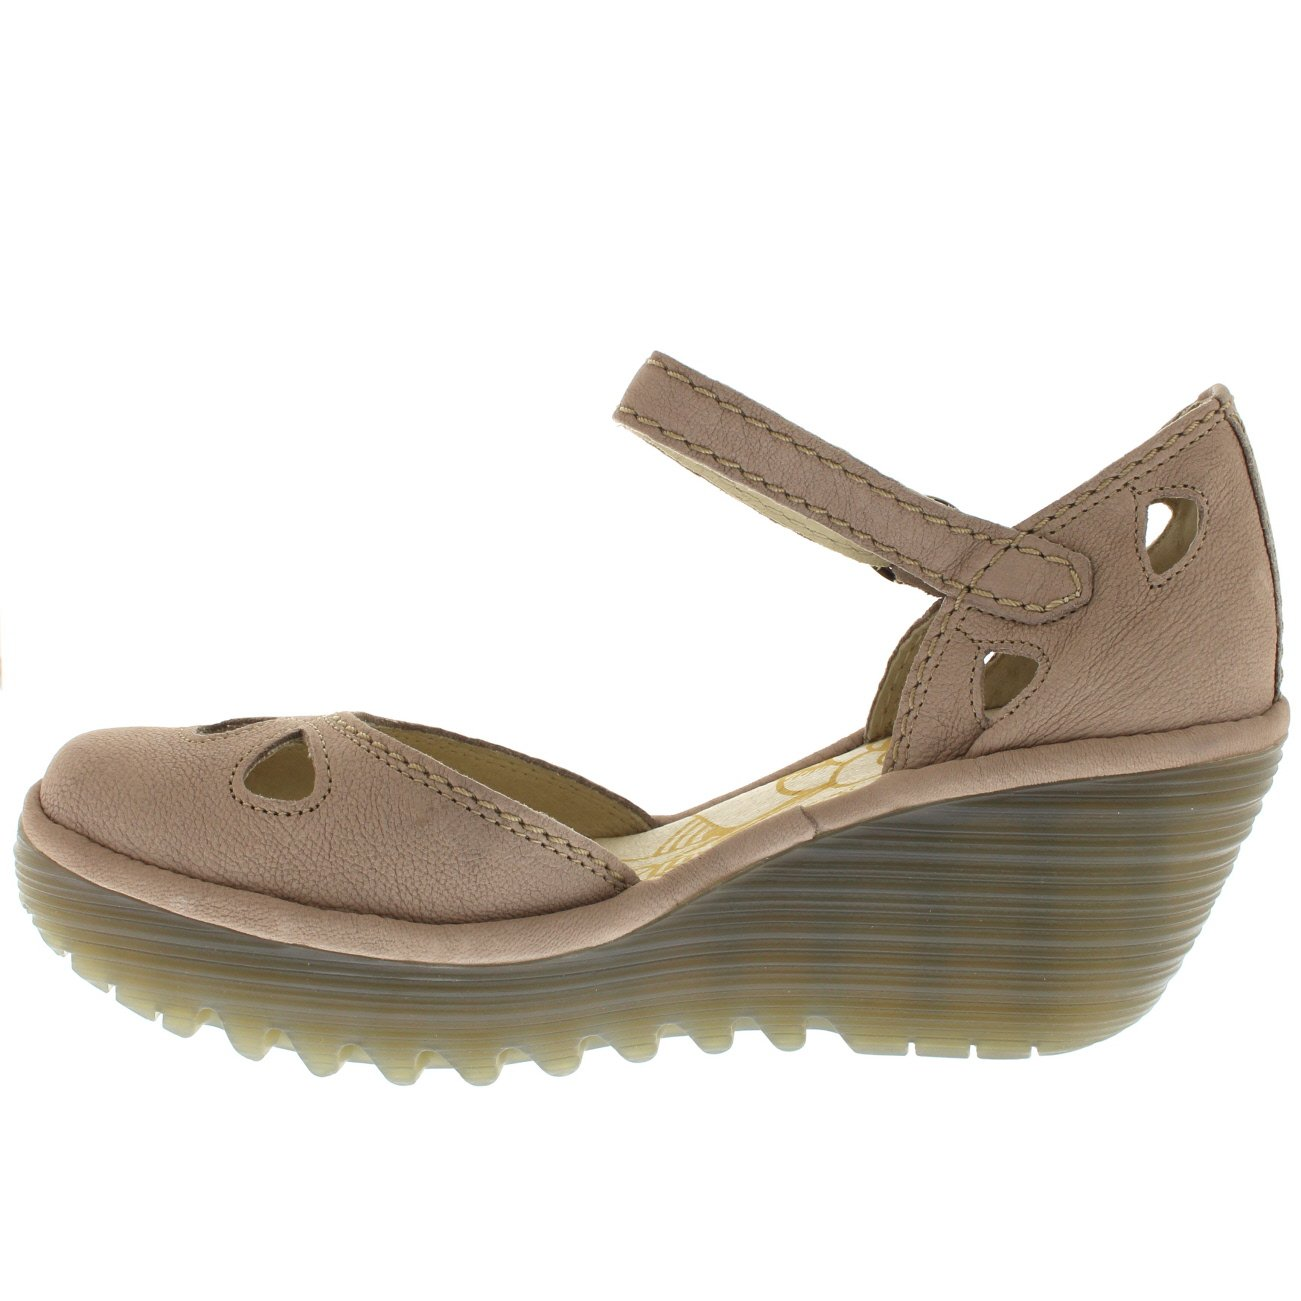 FLY London Womens Yuna Cupido Leather Sandals Summer Shoes Wedge Heel - Concrete - 6 by FLY London (Image #2)